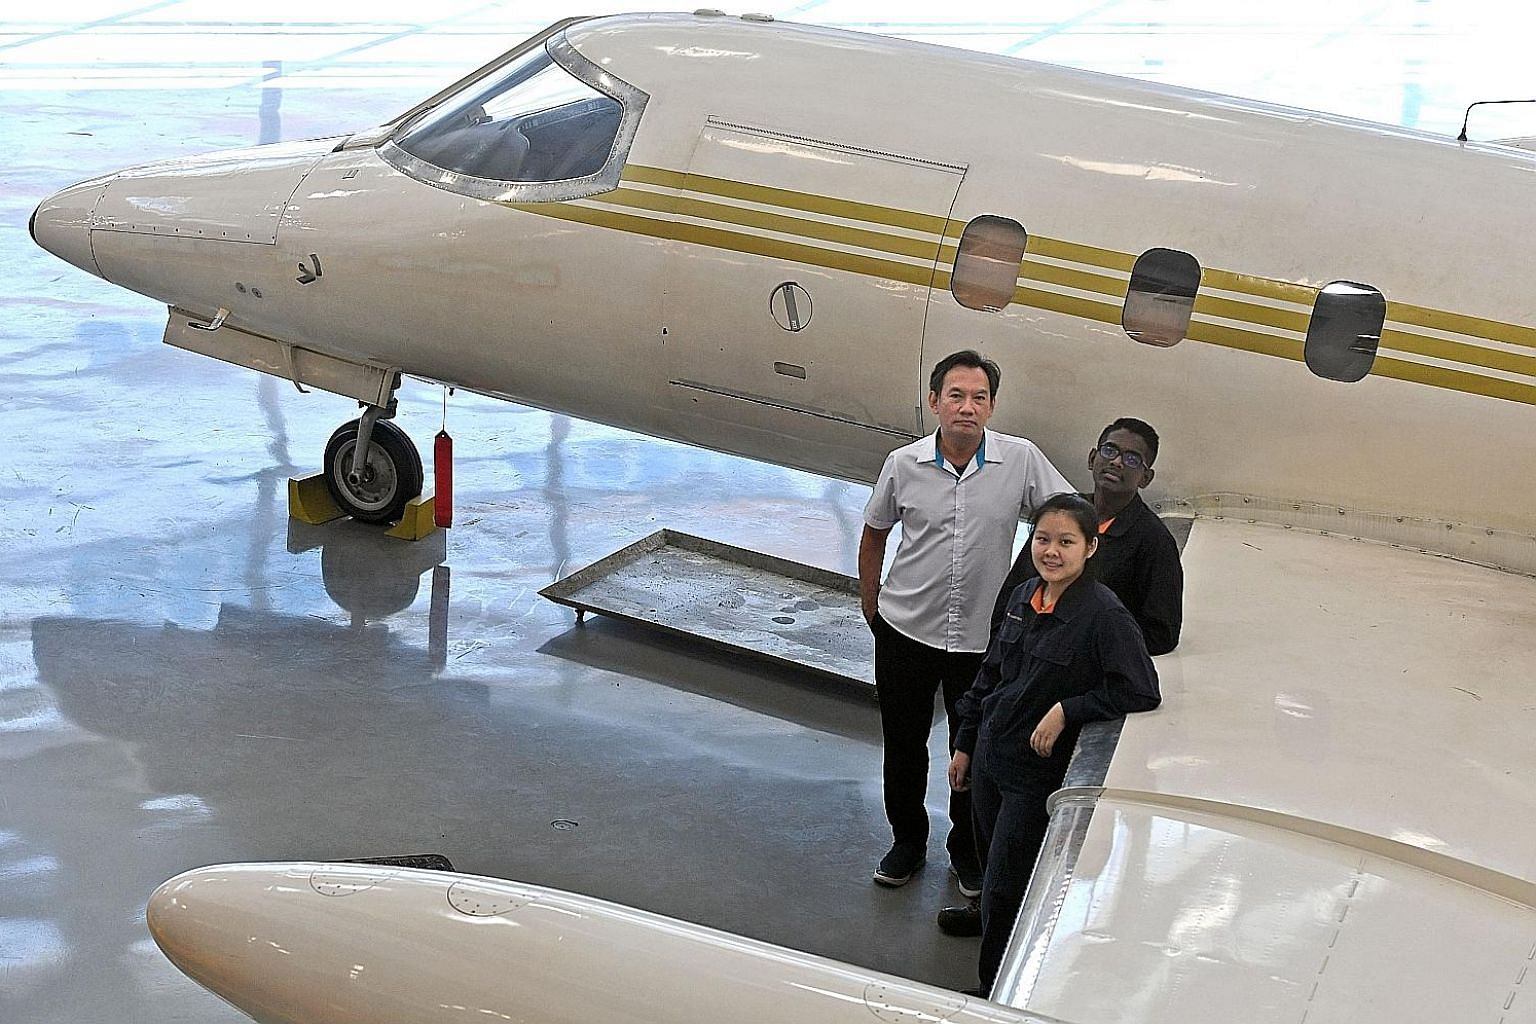 A team comprising ITE College Central students Michael Cham, 57, Nicole Ng, 17, and Steven Muthukumar, 17, won the top prize in the prototypes category of the Aviation Innovation Competition organised by the International Civil Aviation Organisation,